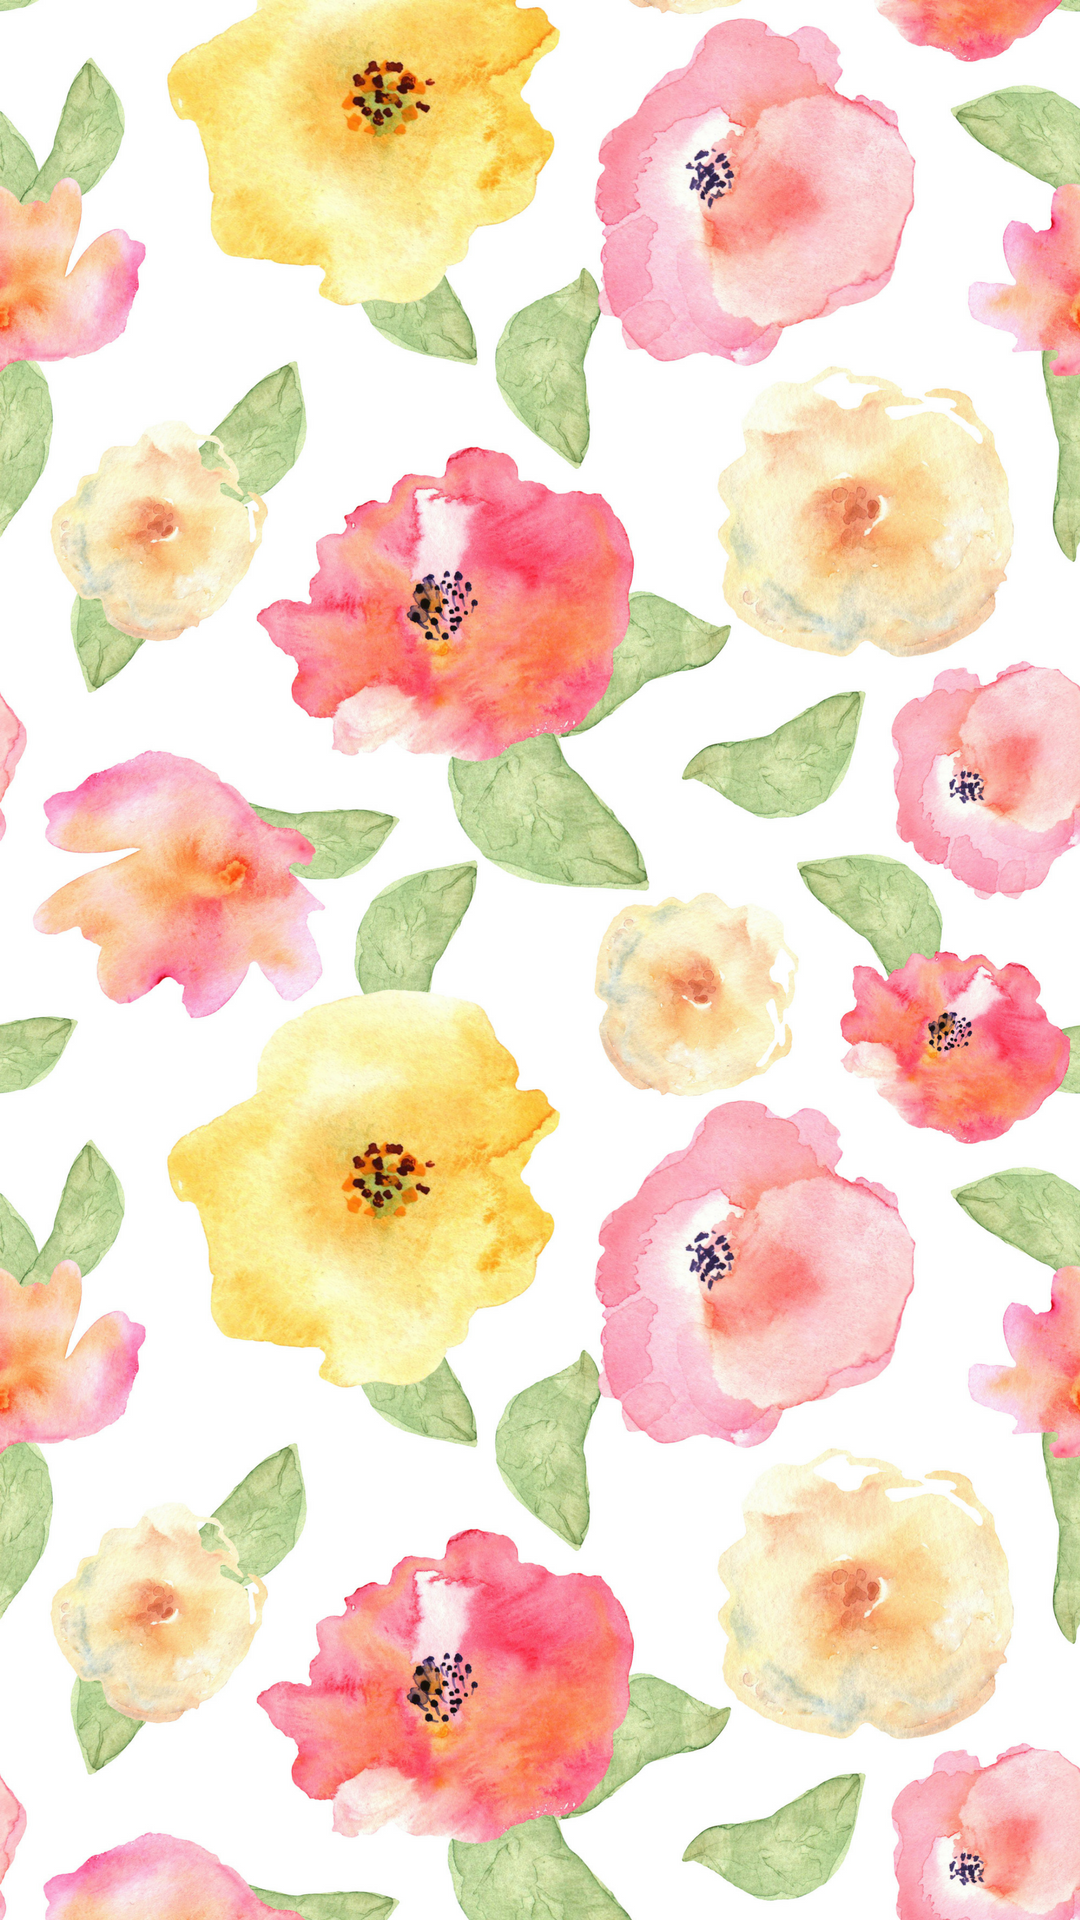 1080x1920 watercolor floral phone background | me in 2019 | Floral ...